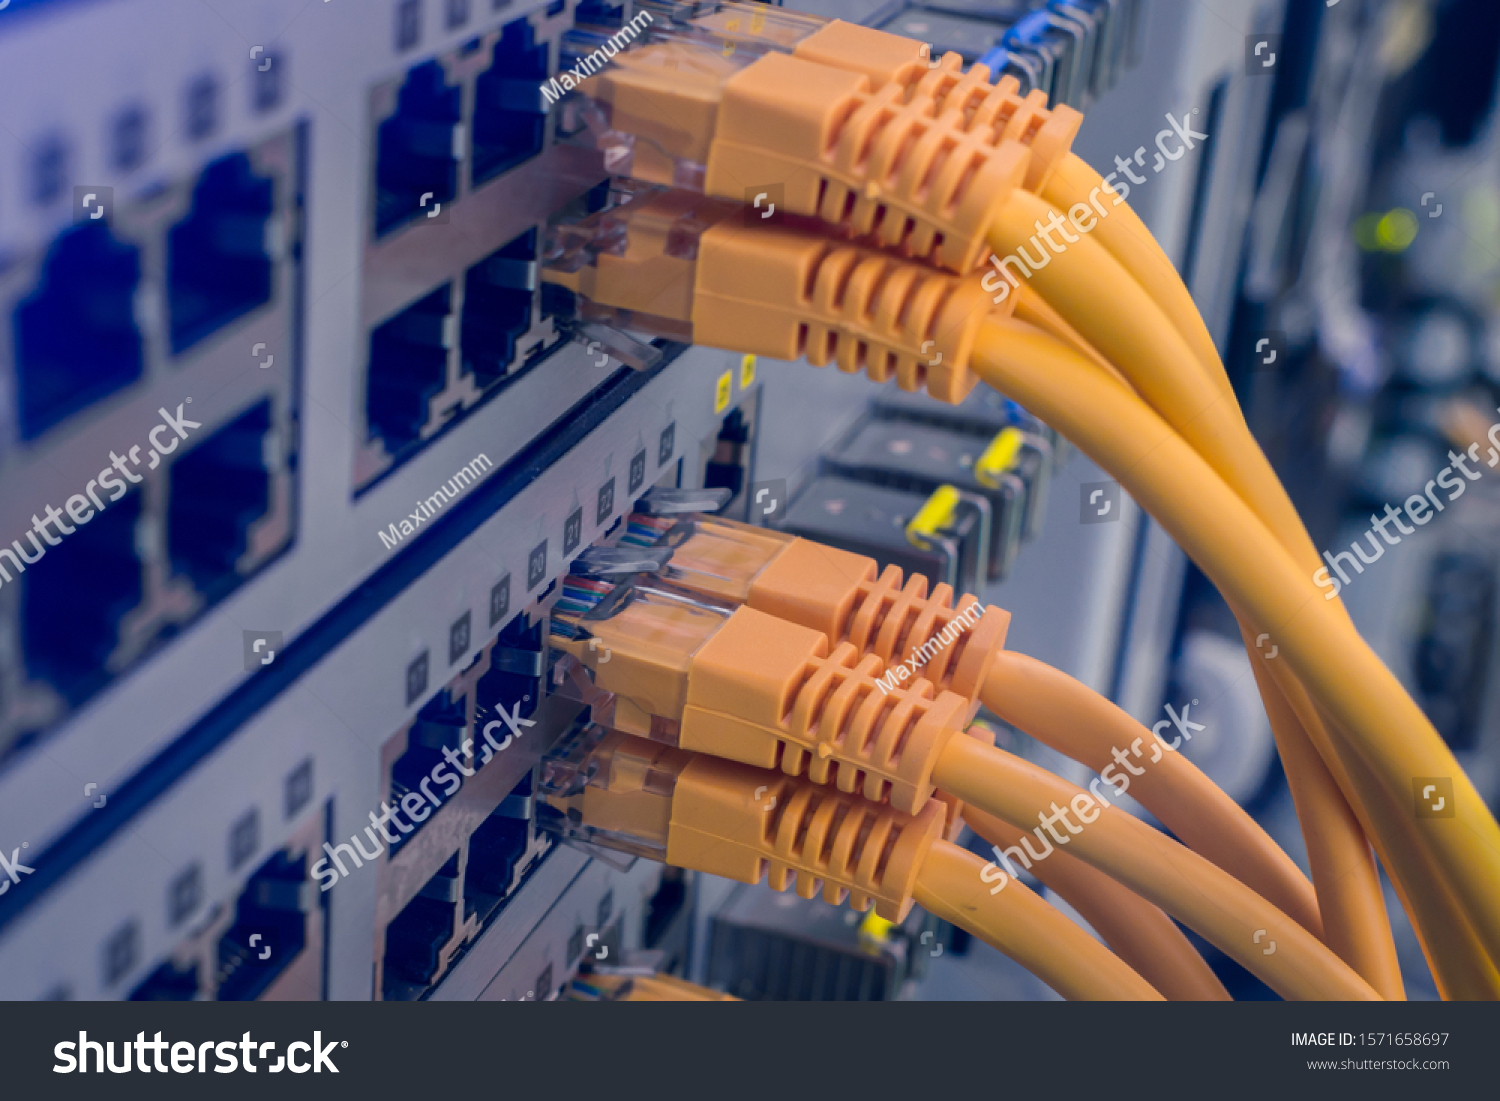 Internet utp wires are closeup. A bunch of yellow communication cables connect to the router interfaces. Telecommunication equipment is in the server room of the data center. Technology concept. #1571658697